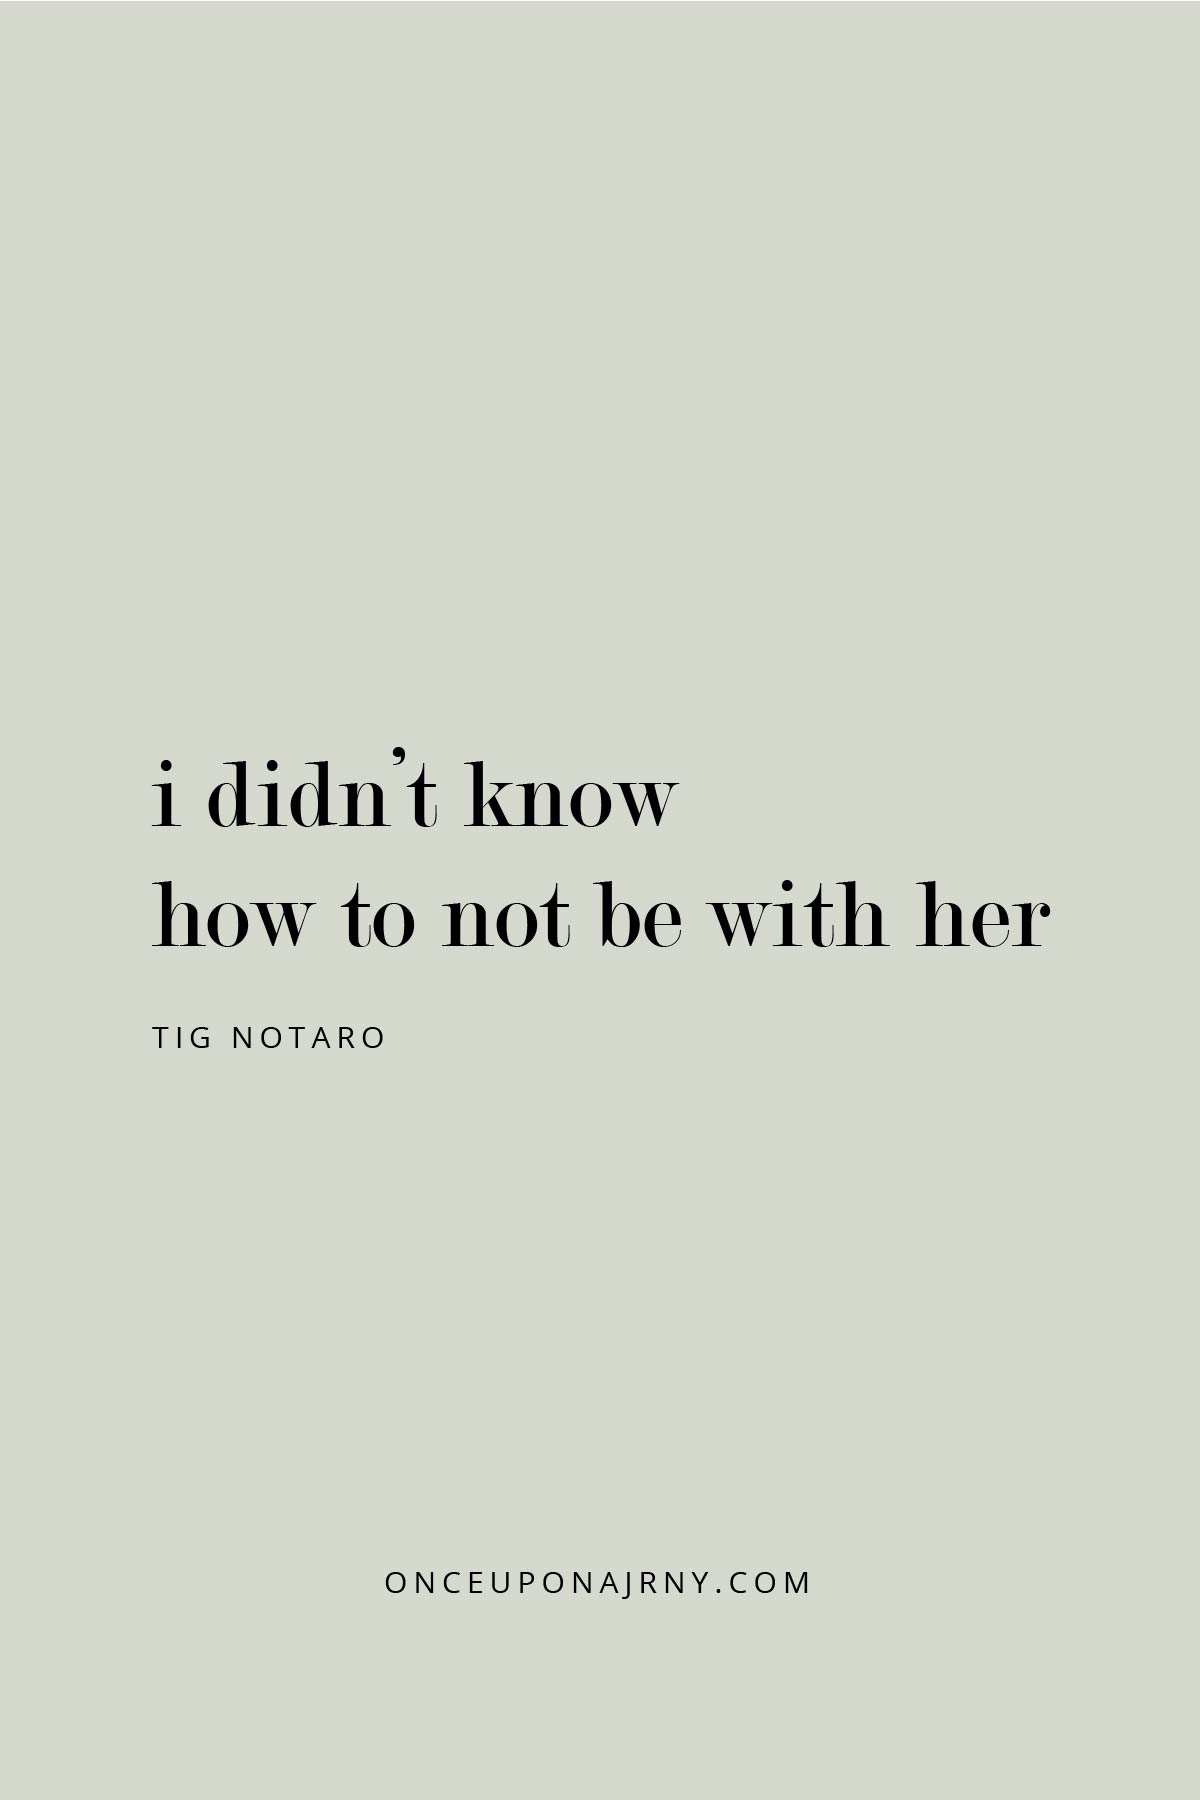 I didn't know how to not be with her. - Tig Notaro lesbian quotes